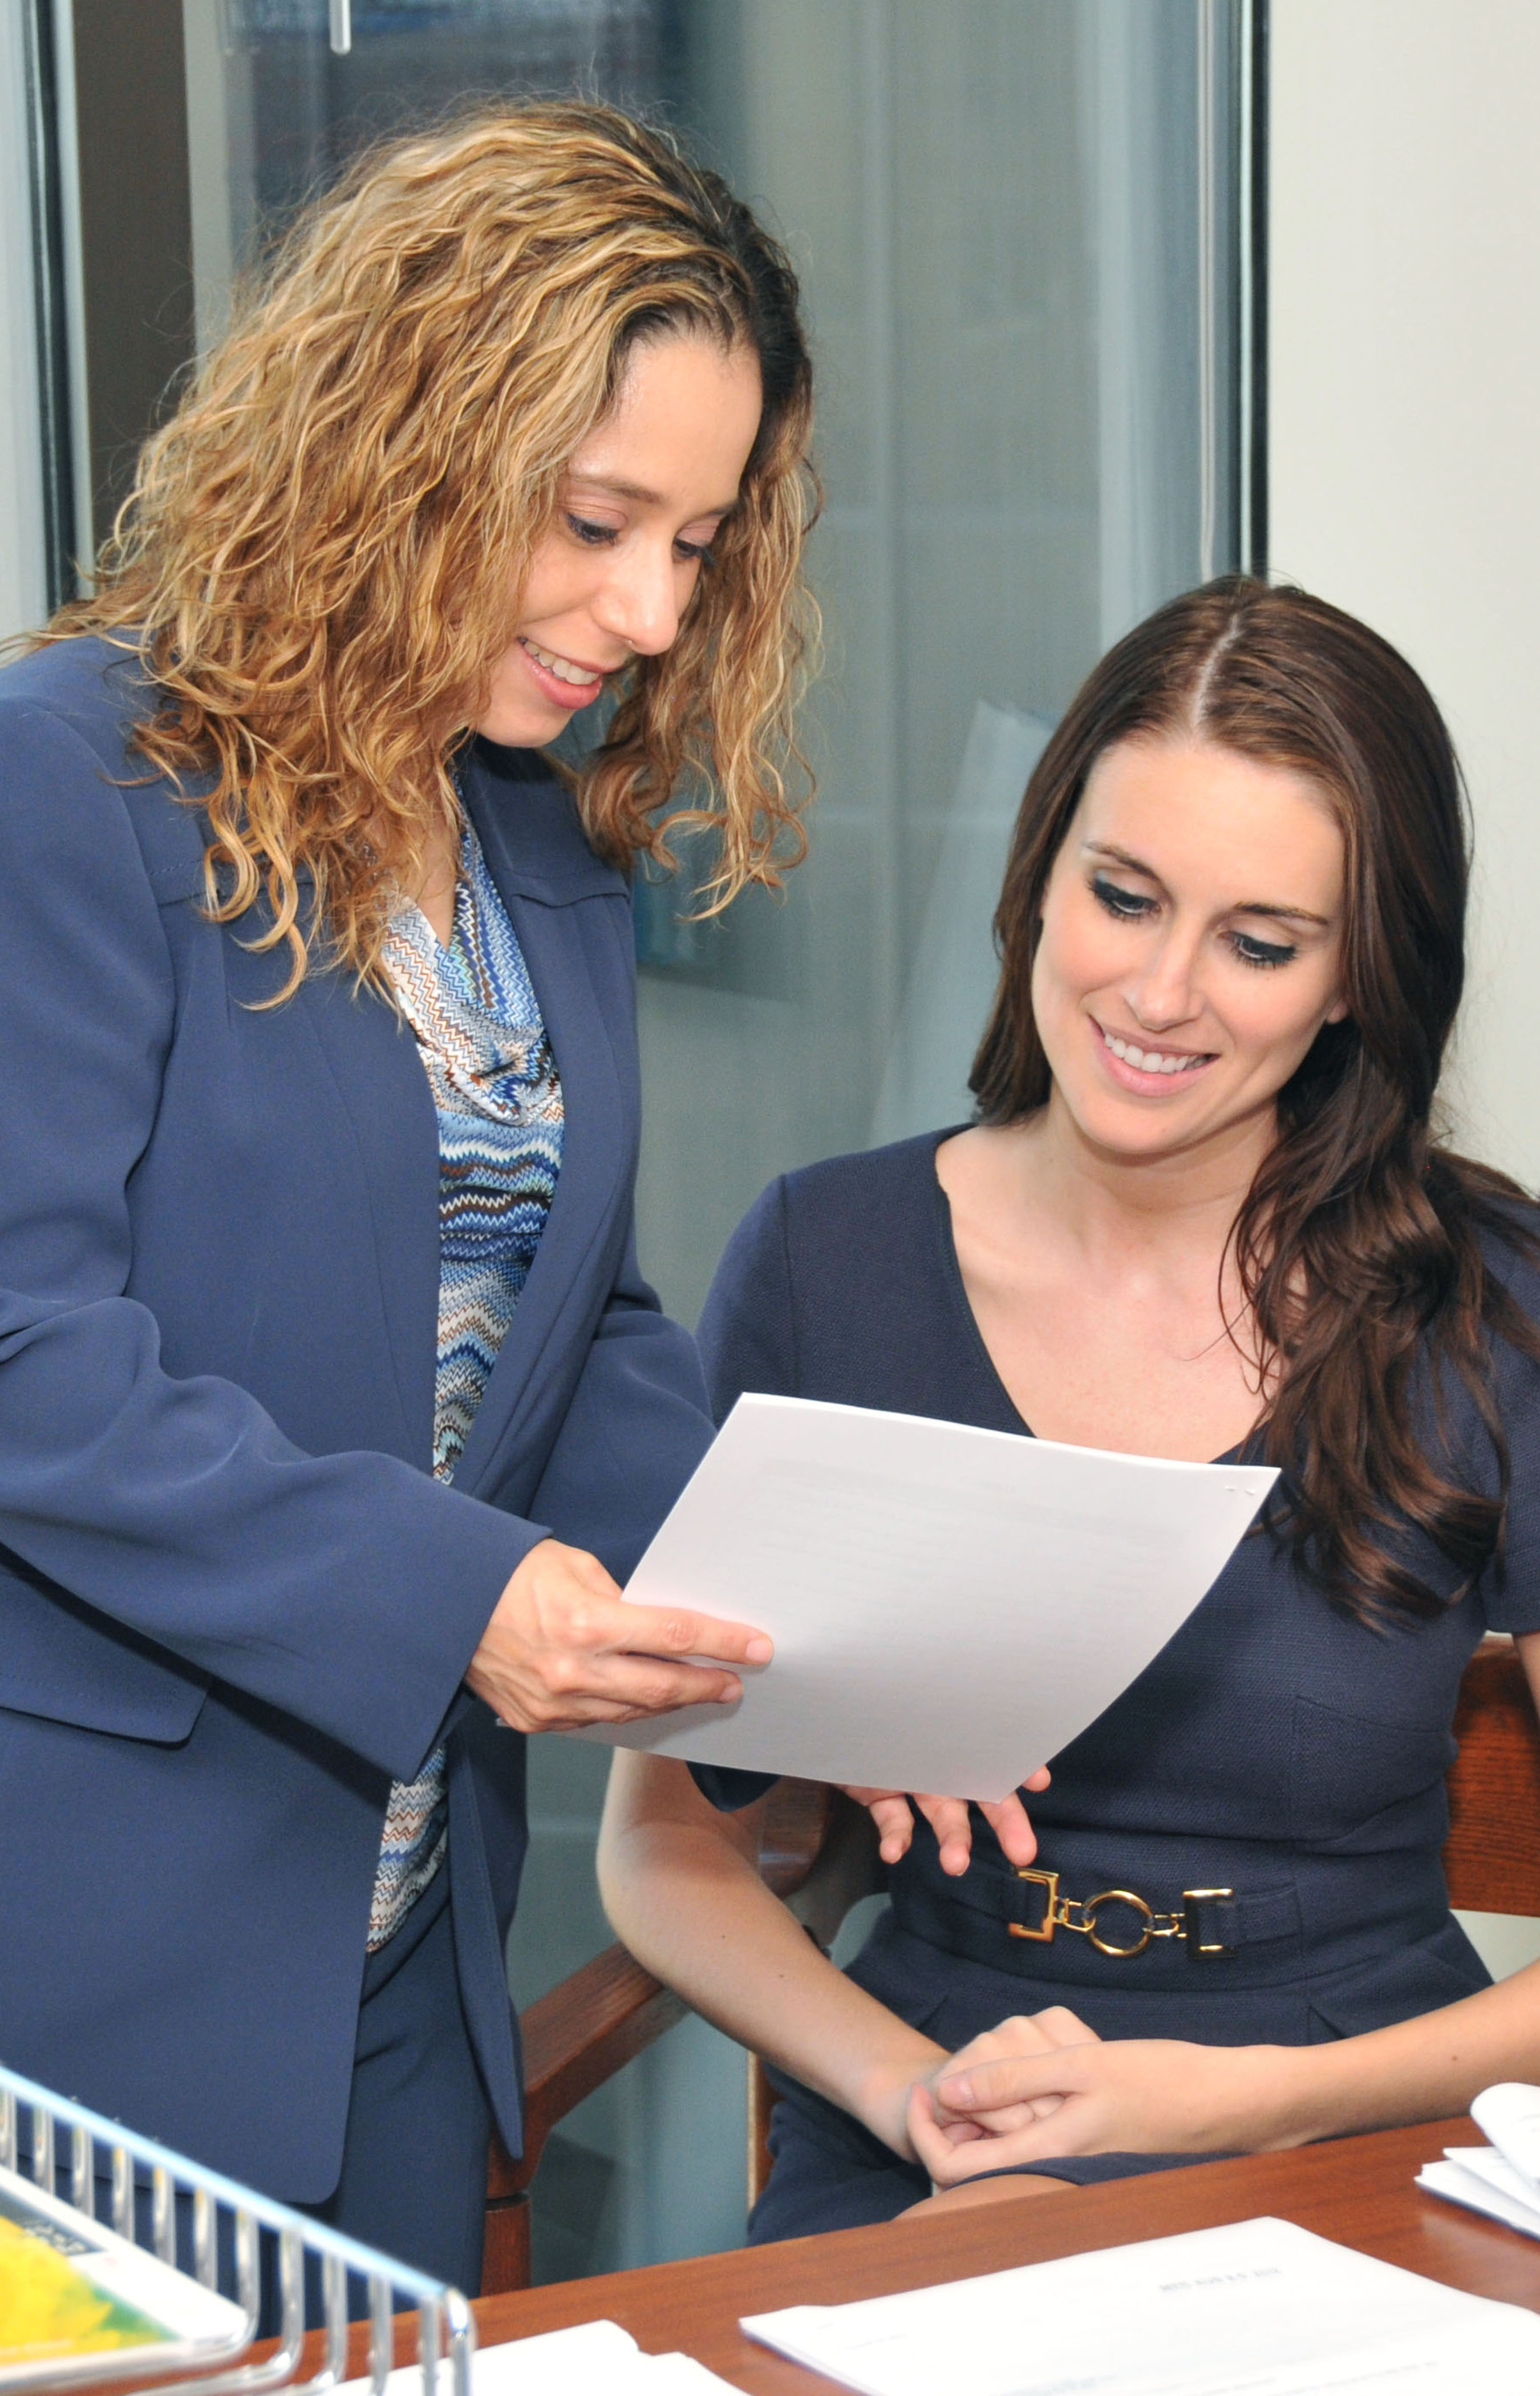 A paralegal extern working with an attorney